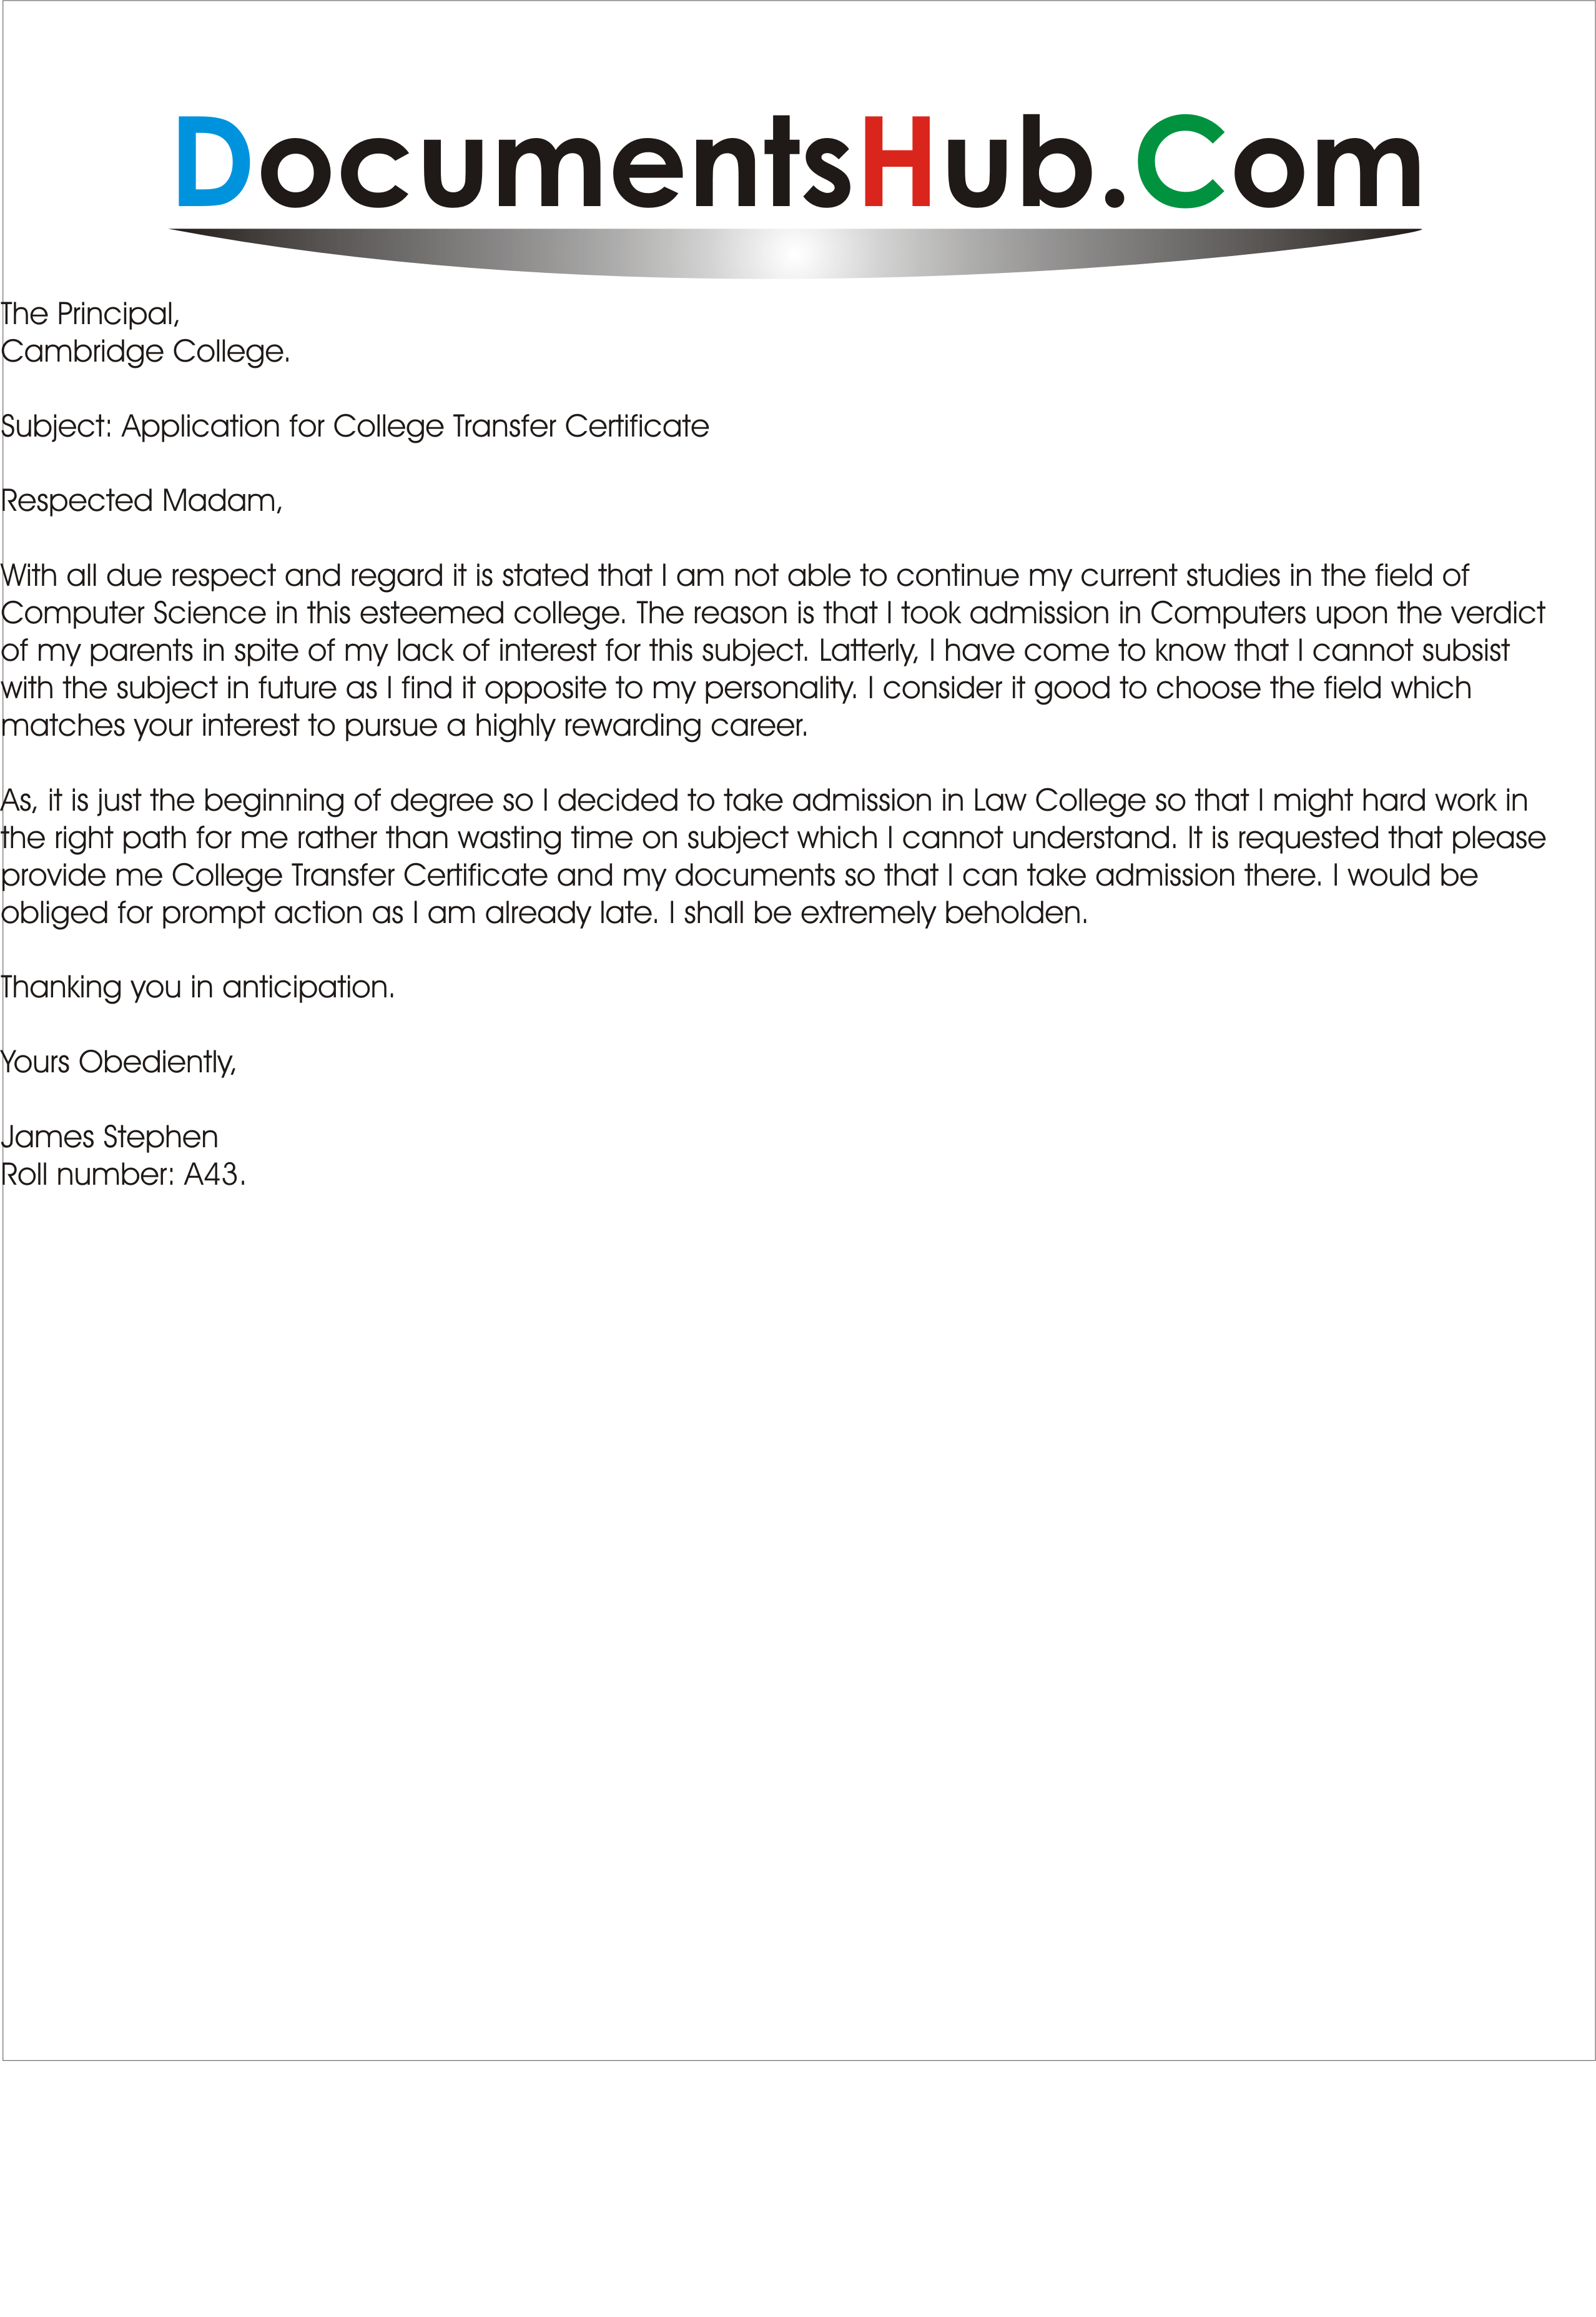 Request letter format for school transfer certificate bonafide request letter format for school transfer certificate bonafide from application yelopaper Images